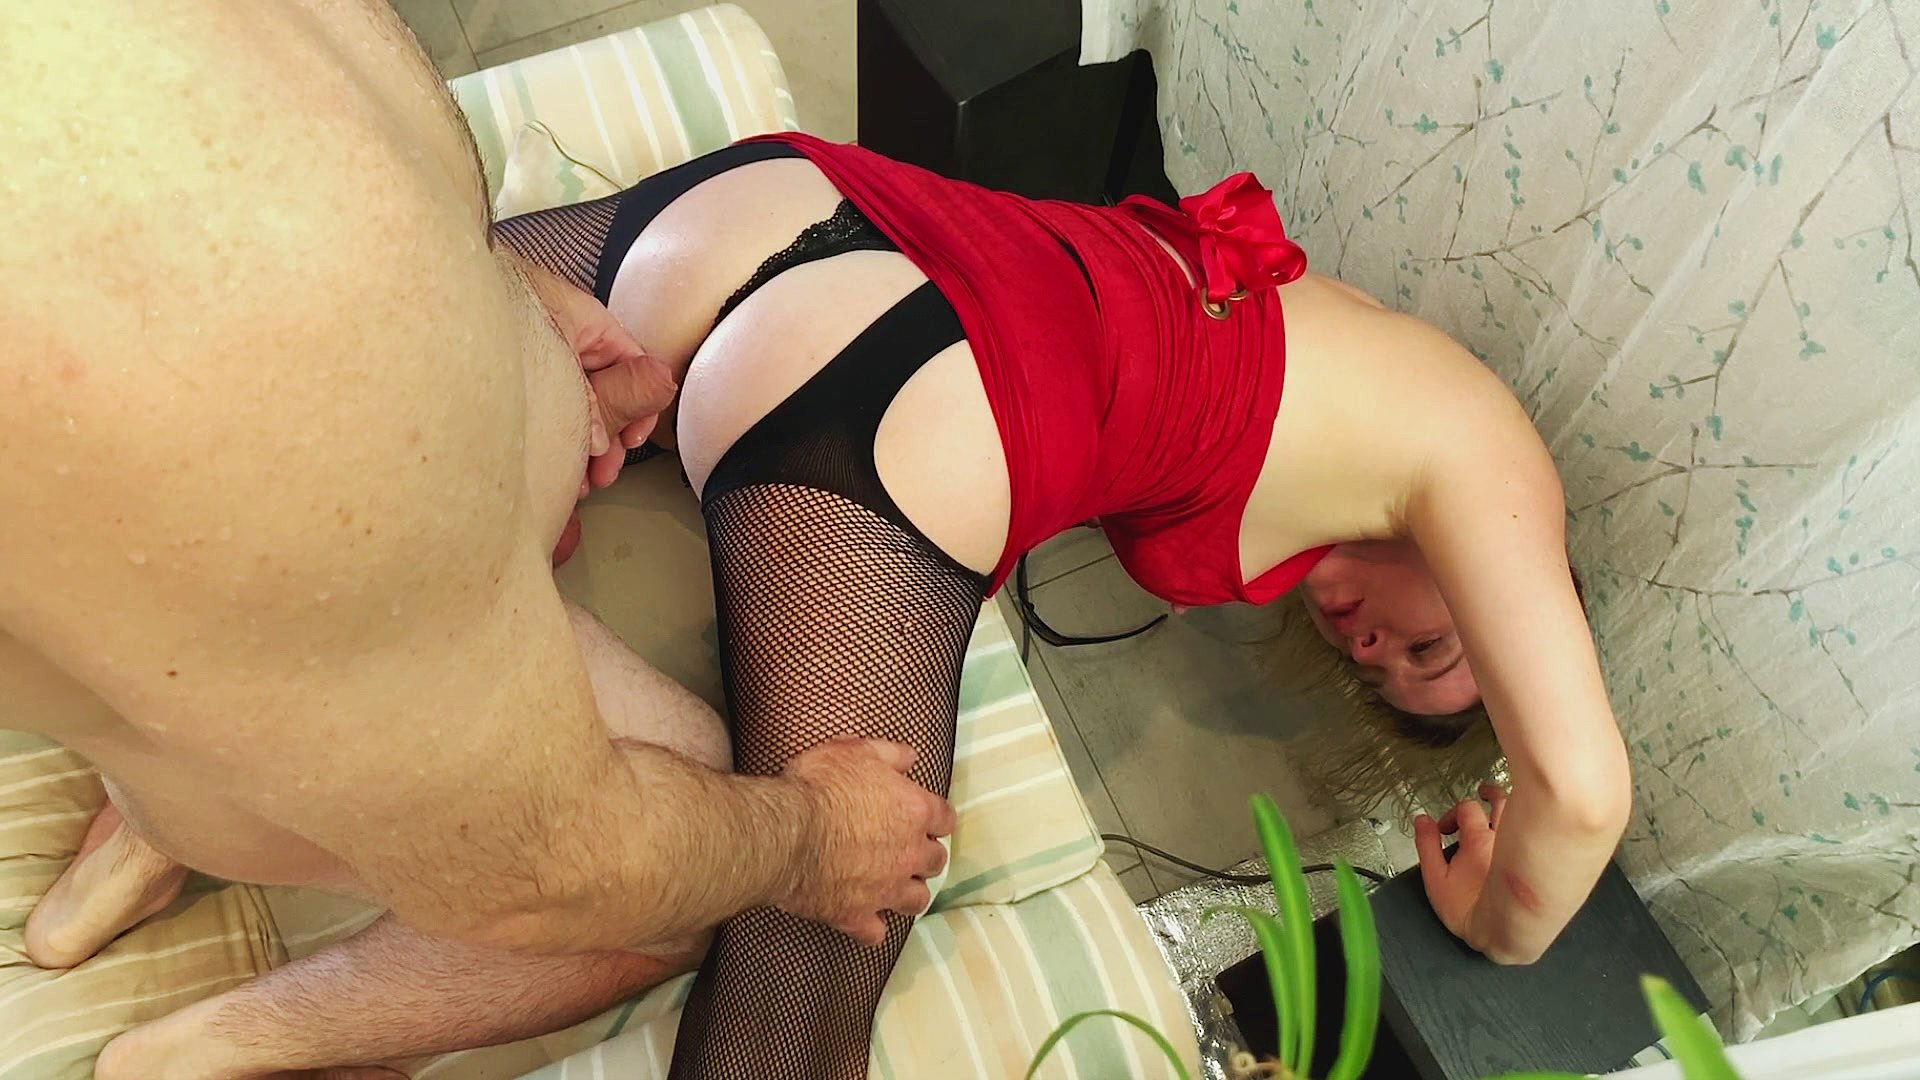 Stuck and fucked